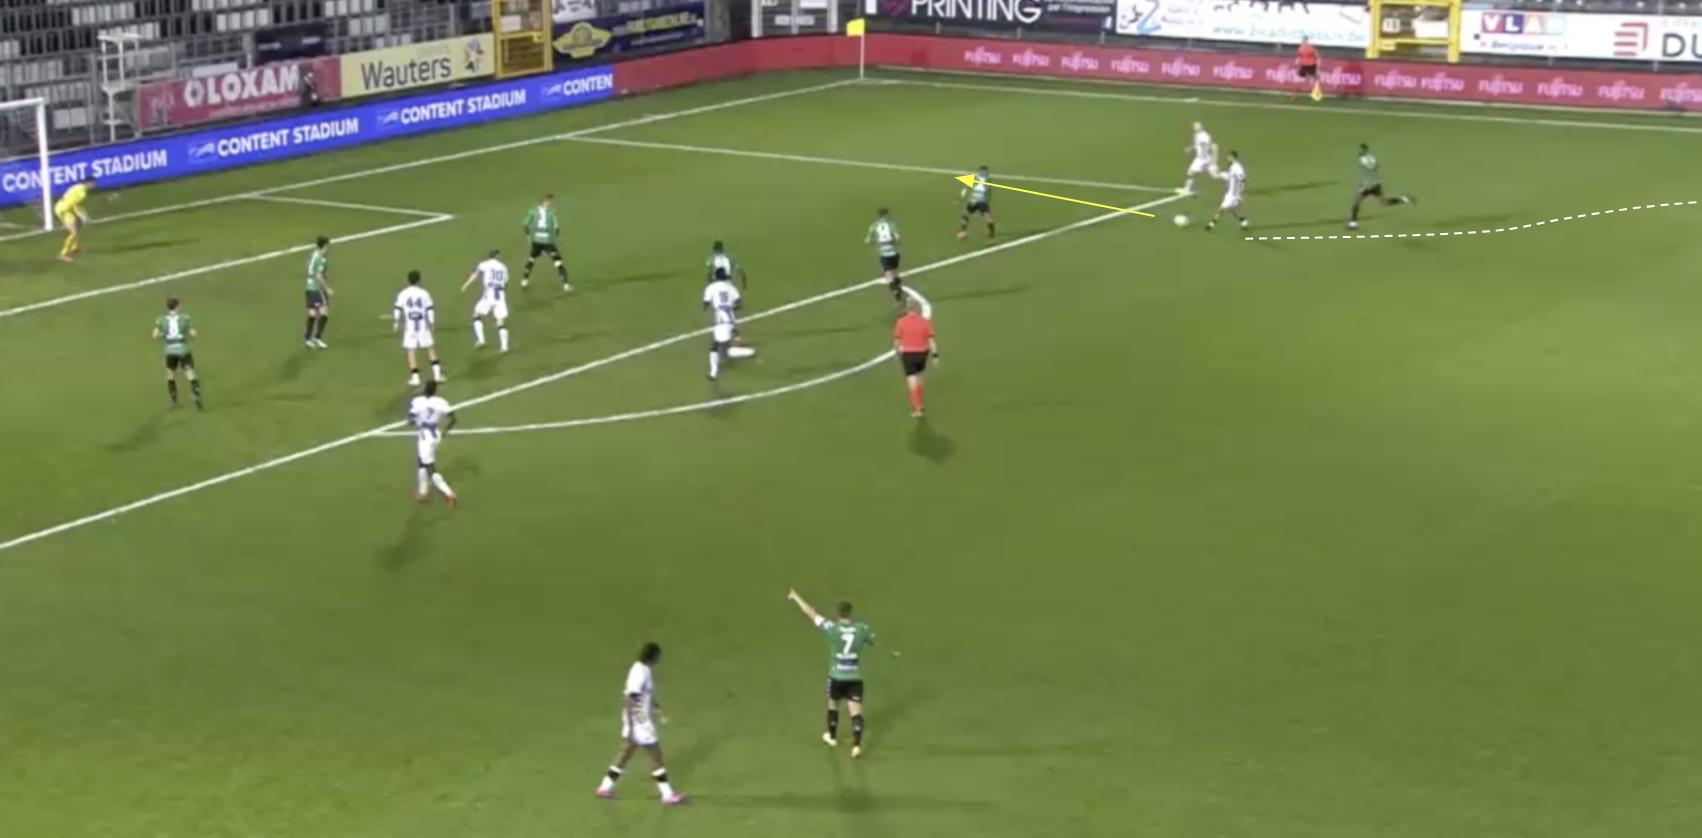 Title: Belgian Pro League 2020/21: Sporting Charleroi v Cercle Brugge – tactical analysis tactics